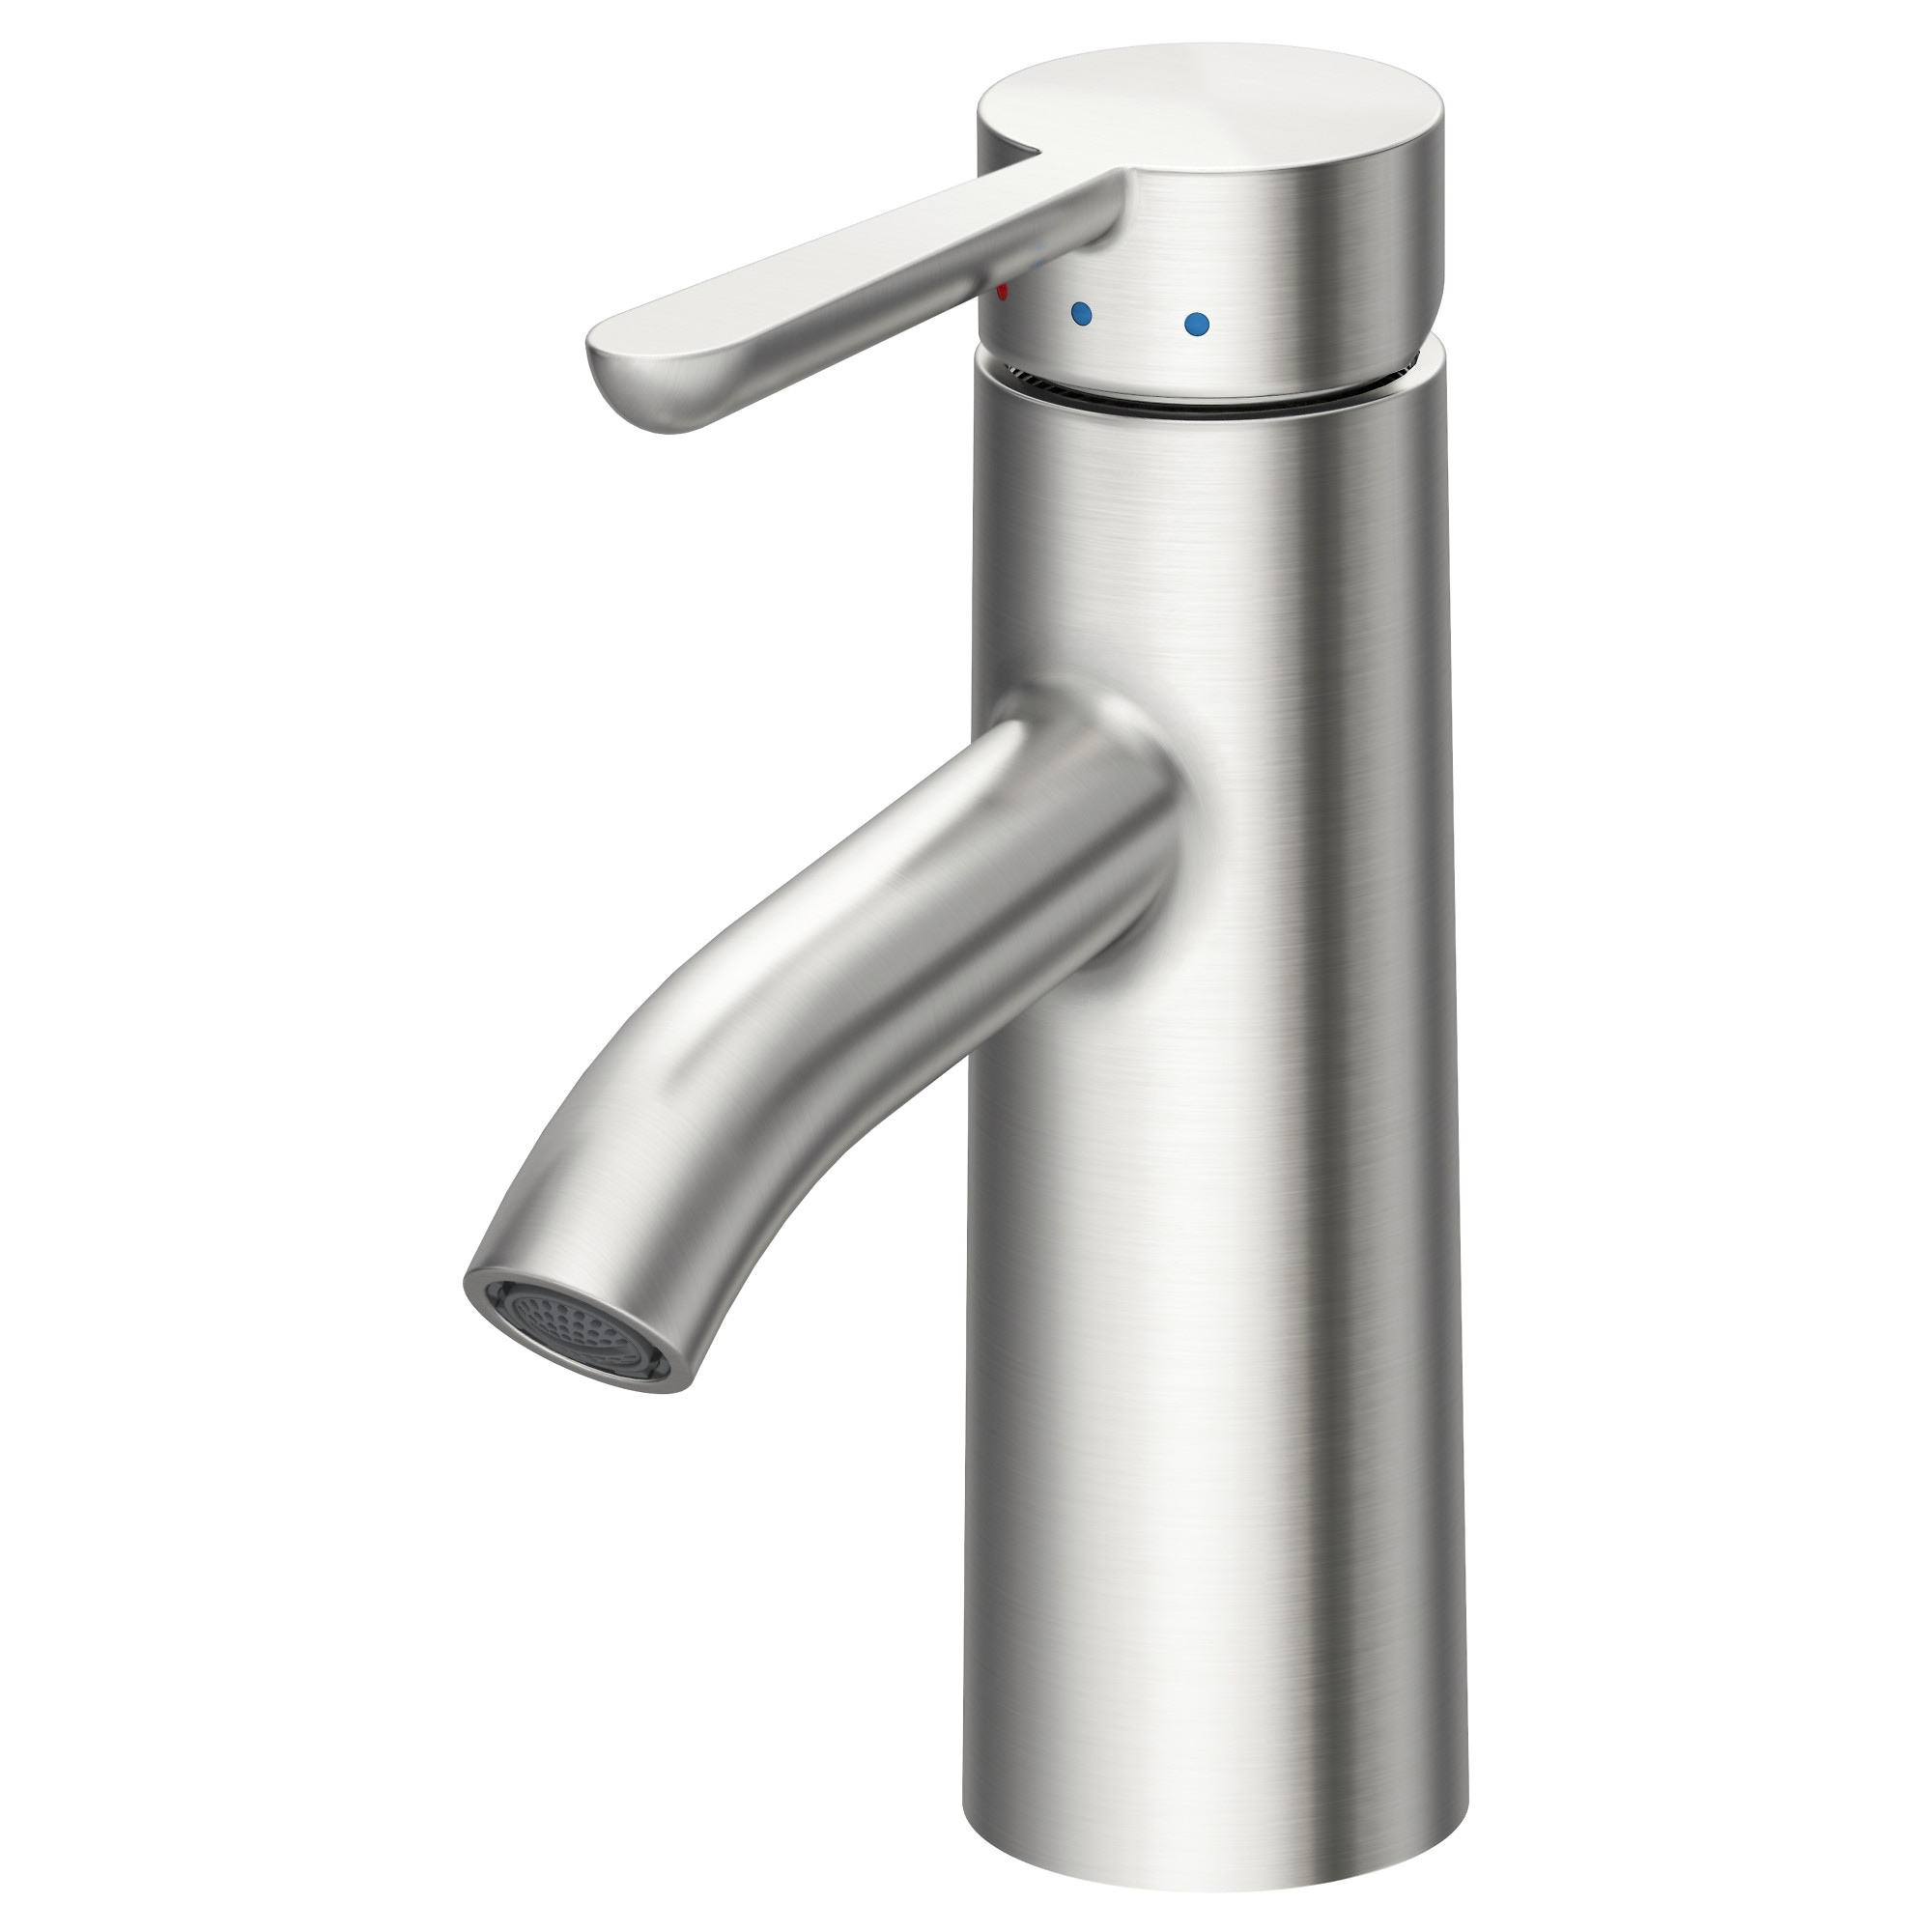 DALSKÄR Bath Faucet With Strainer   IKEA